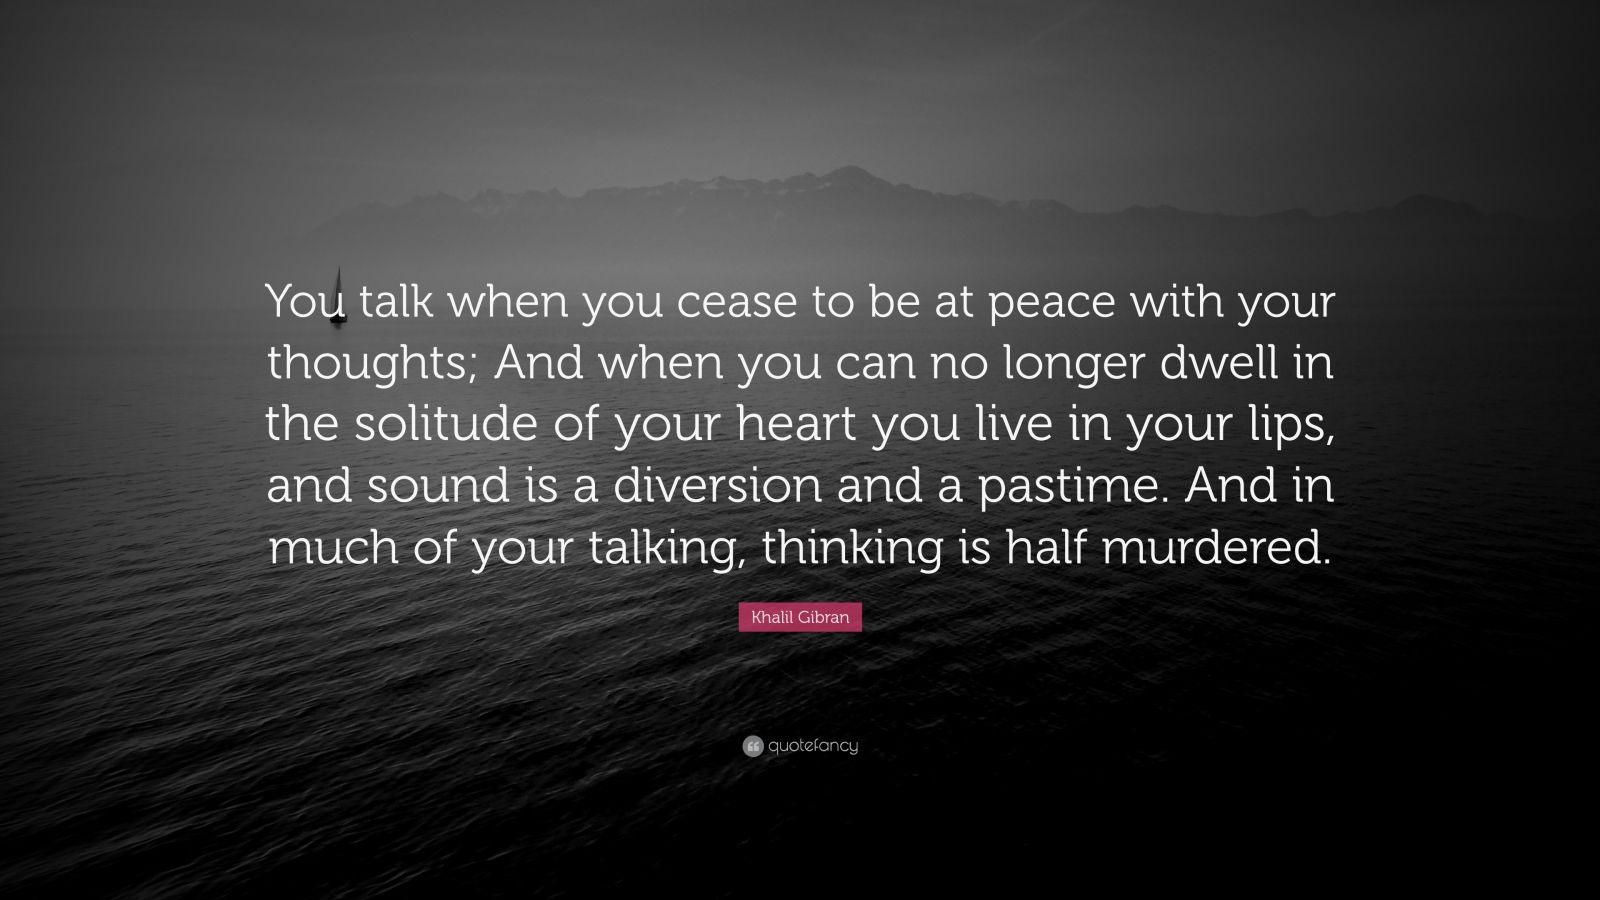 "Khalil Gibran Quote: ""You talk when you cease to be at peace with your thoughts; And when you can no longer dwell in the solitude of your heart you live in your lips, and sound is a diversion and a pastime. And in much of your talking, thinking is half murdered."""